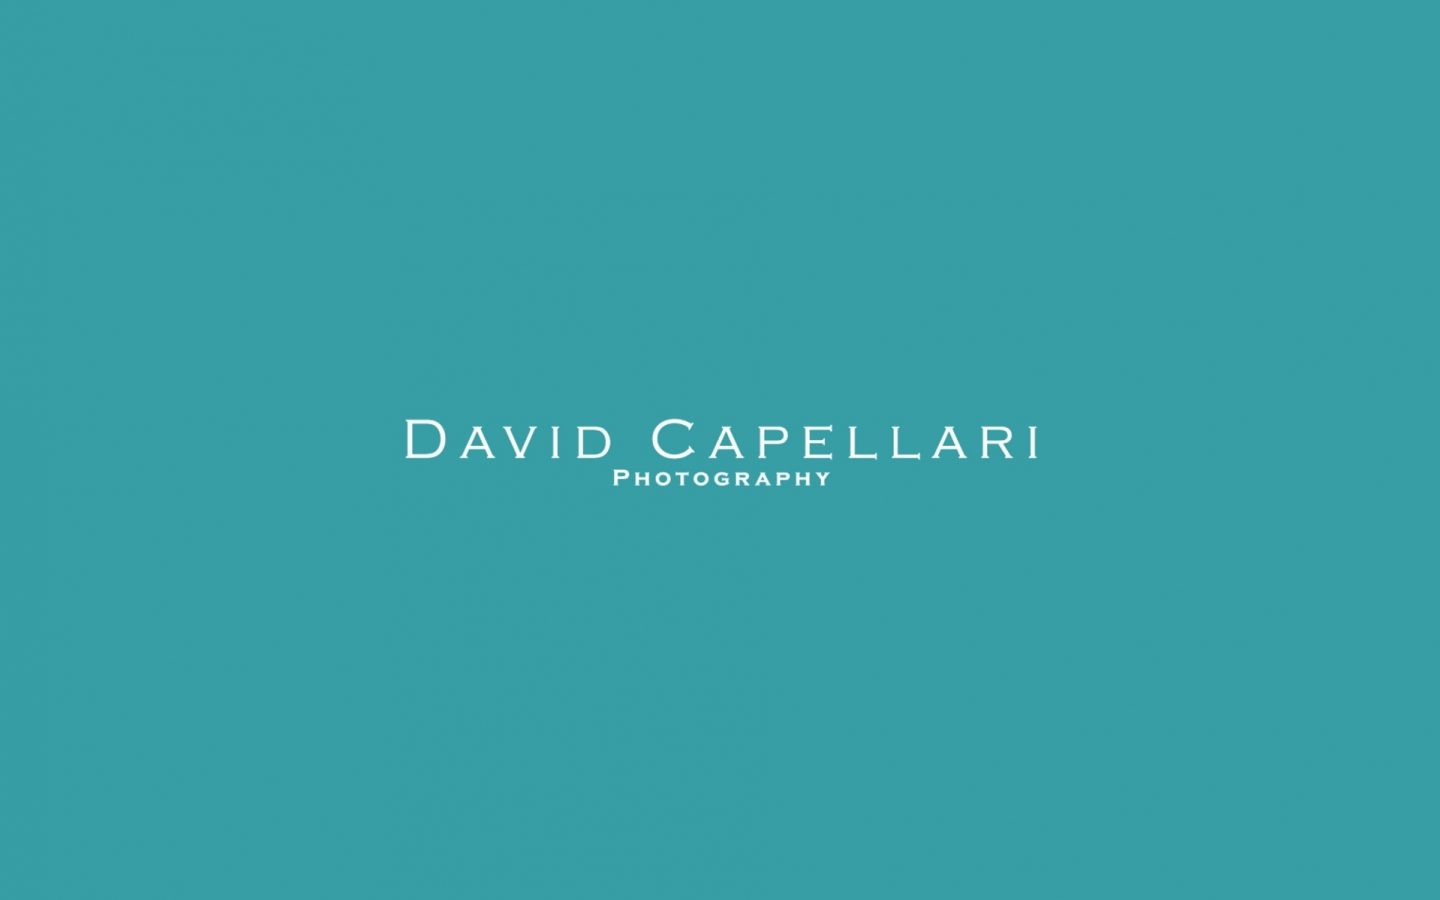 David Capellari Photography Branding Project by Crevisio